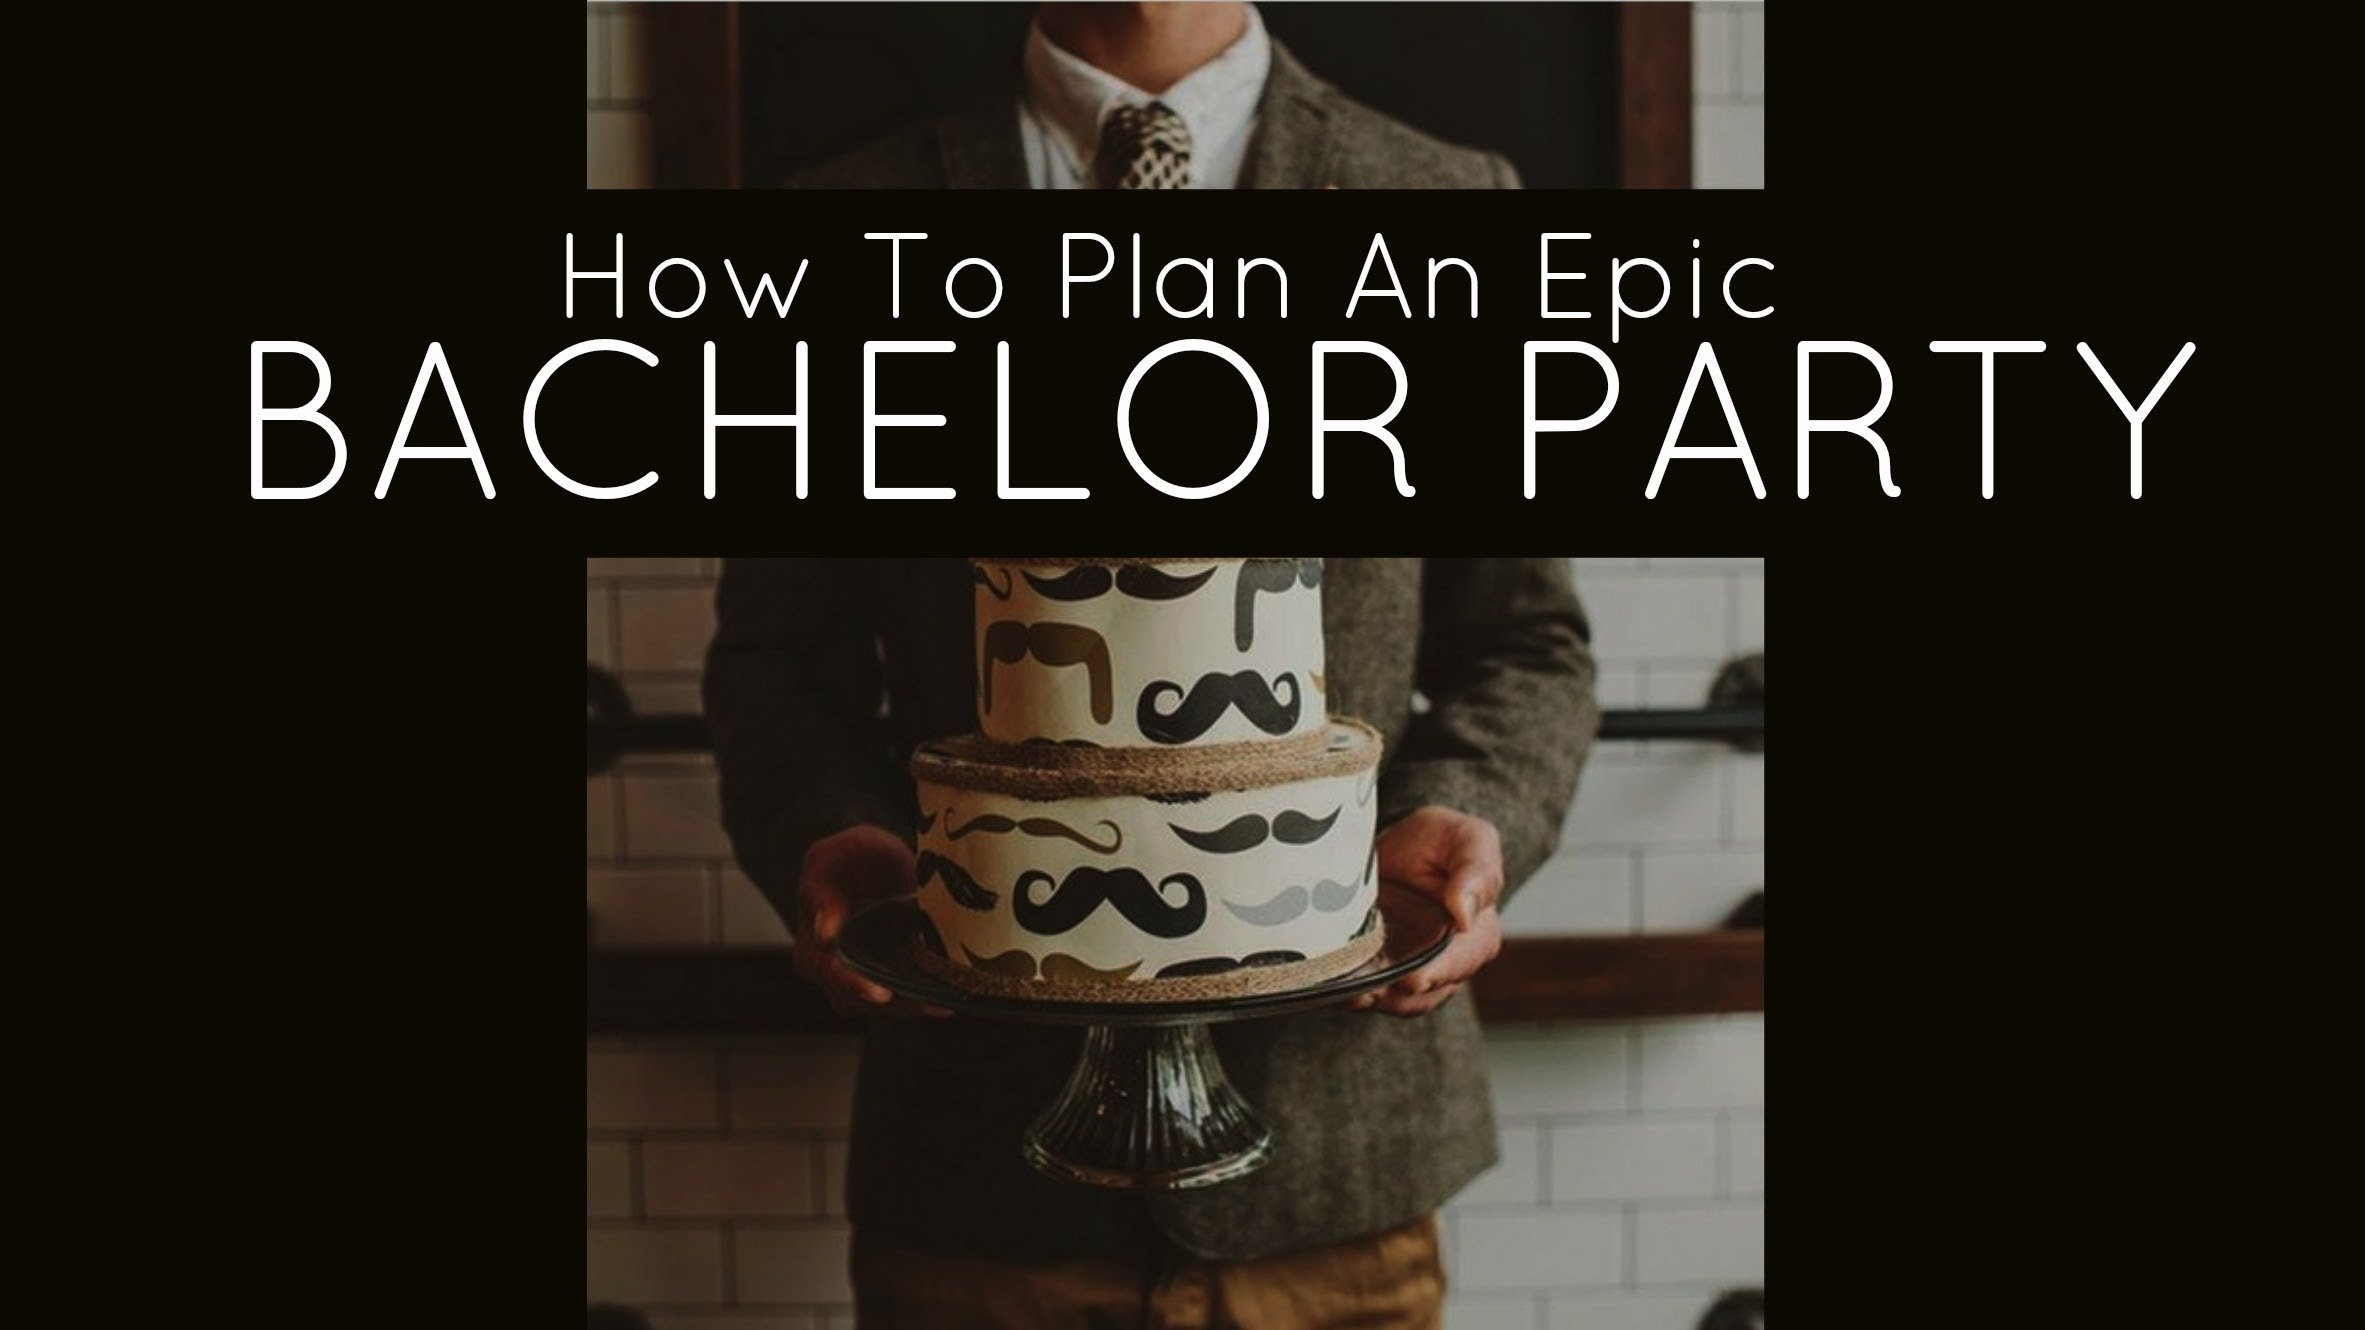 how to plan a bachelor party, bachelor party ideas, bachelor party